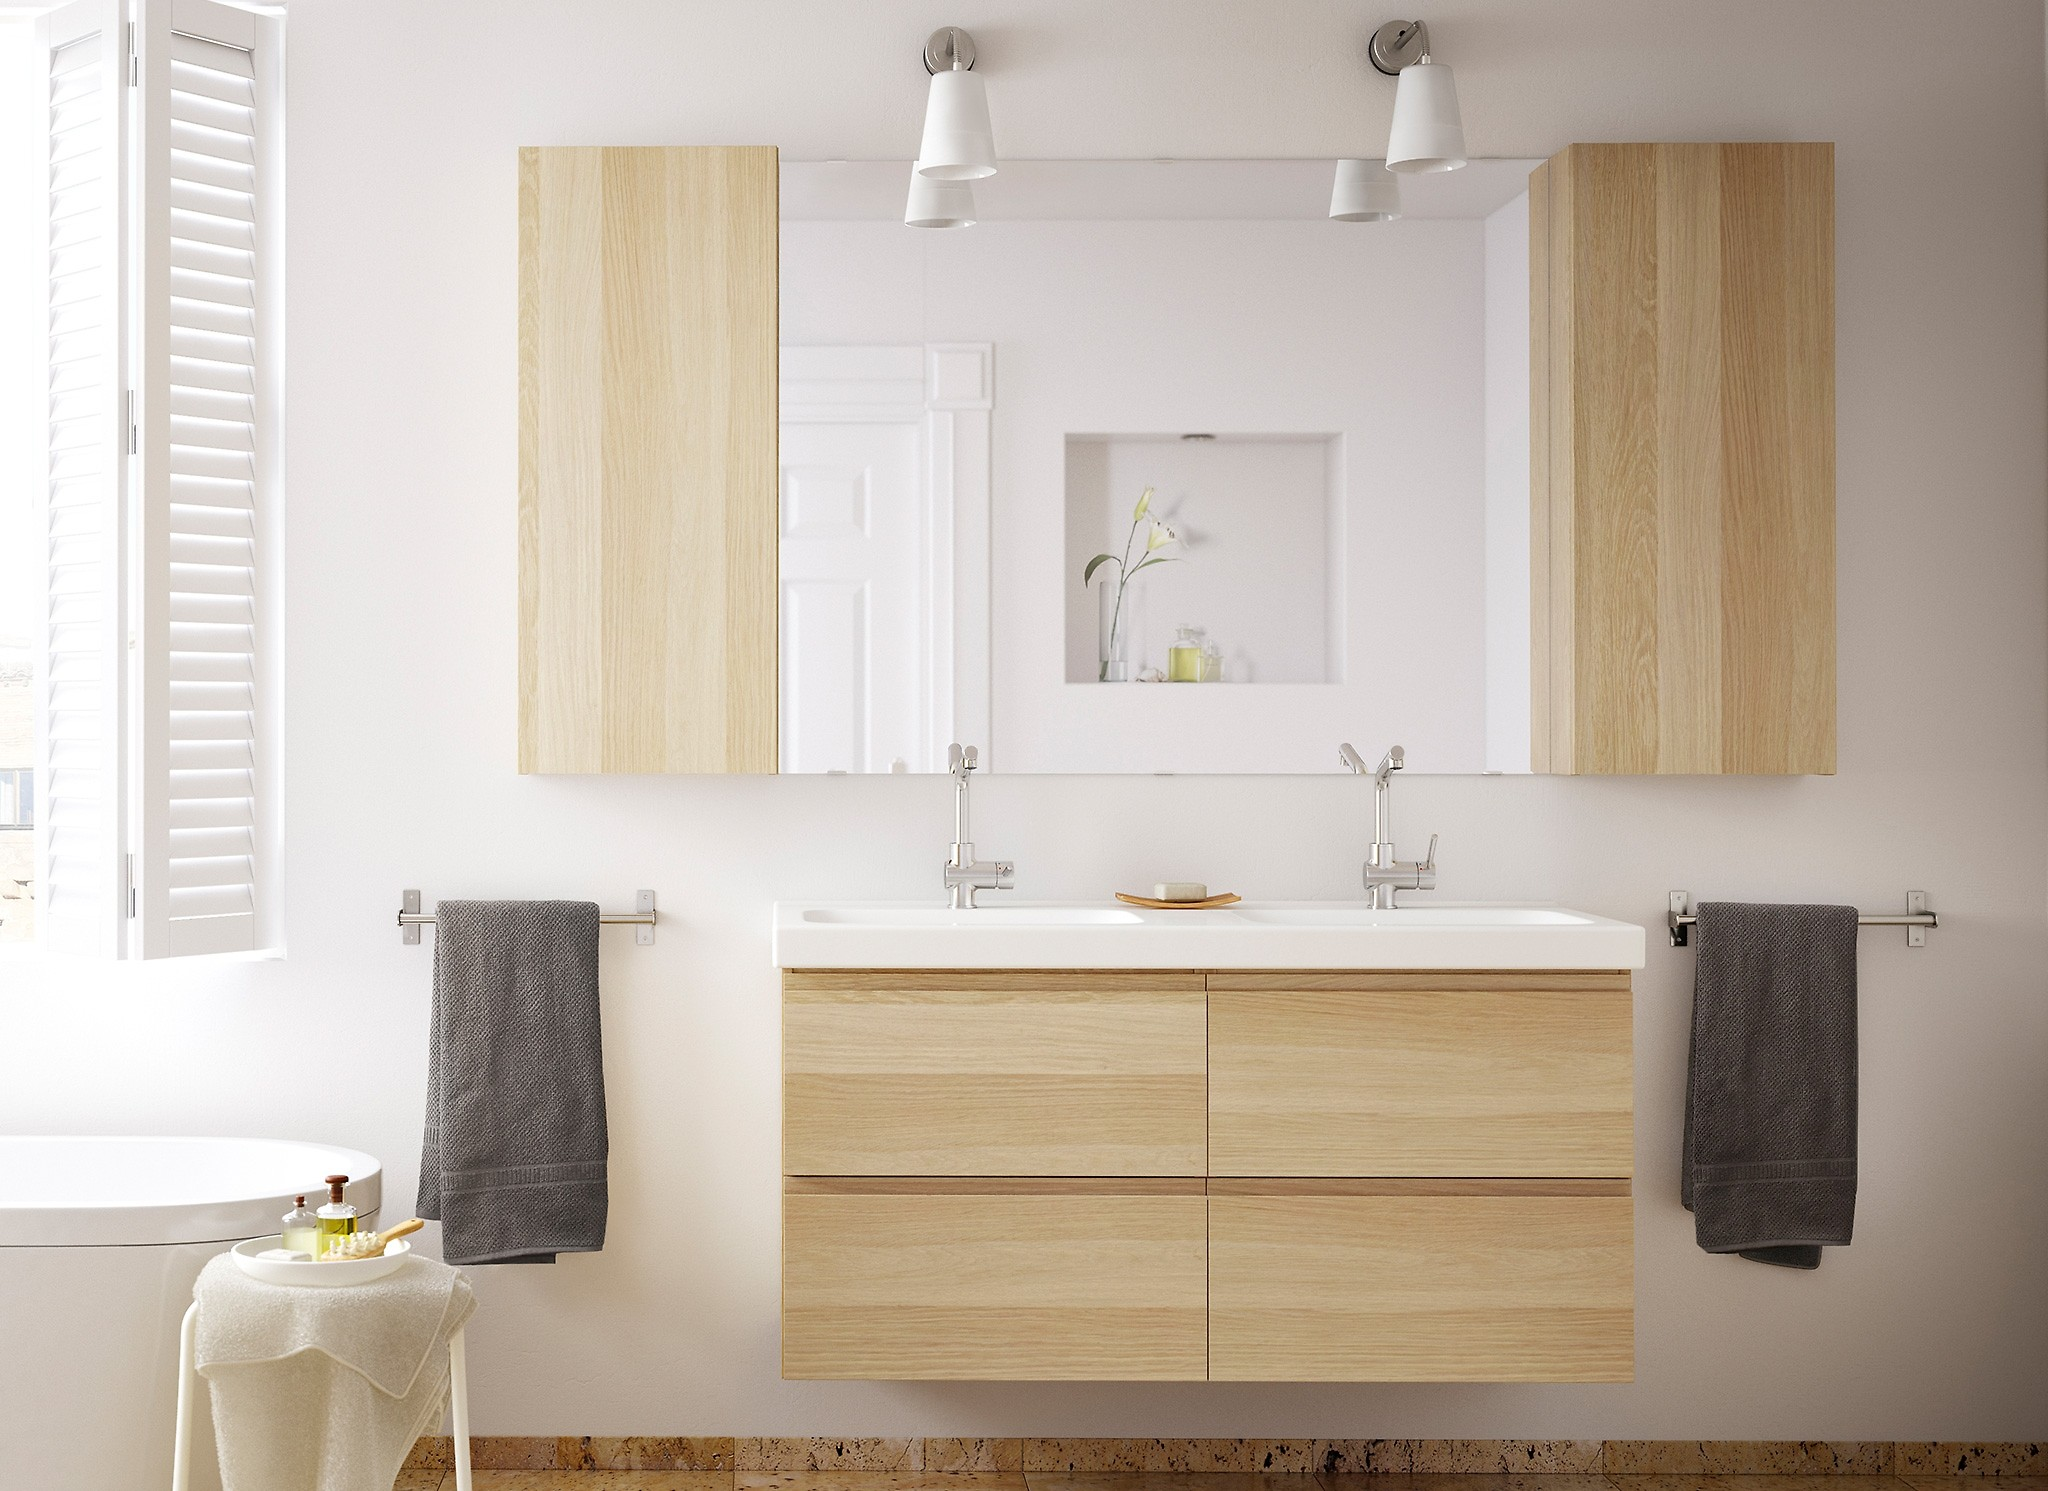 Top Ikea Bathroom Planner Architecture Bathroom Design Ideas